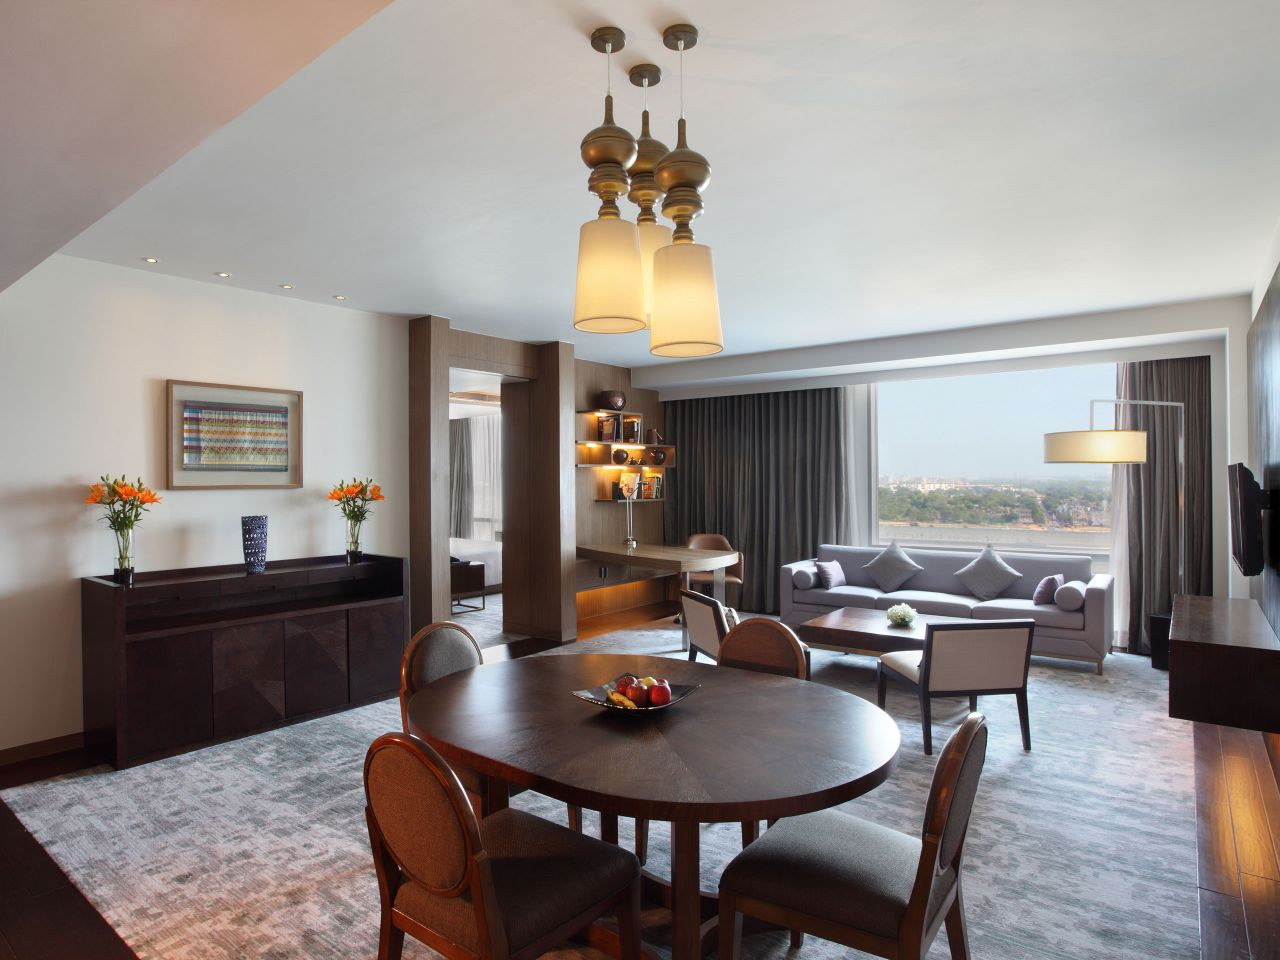 Executive Suite Living Room with Dining Room